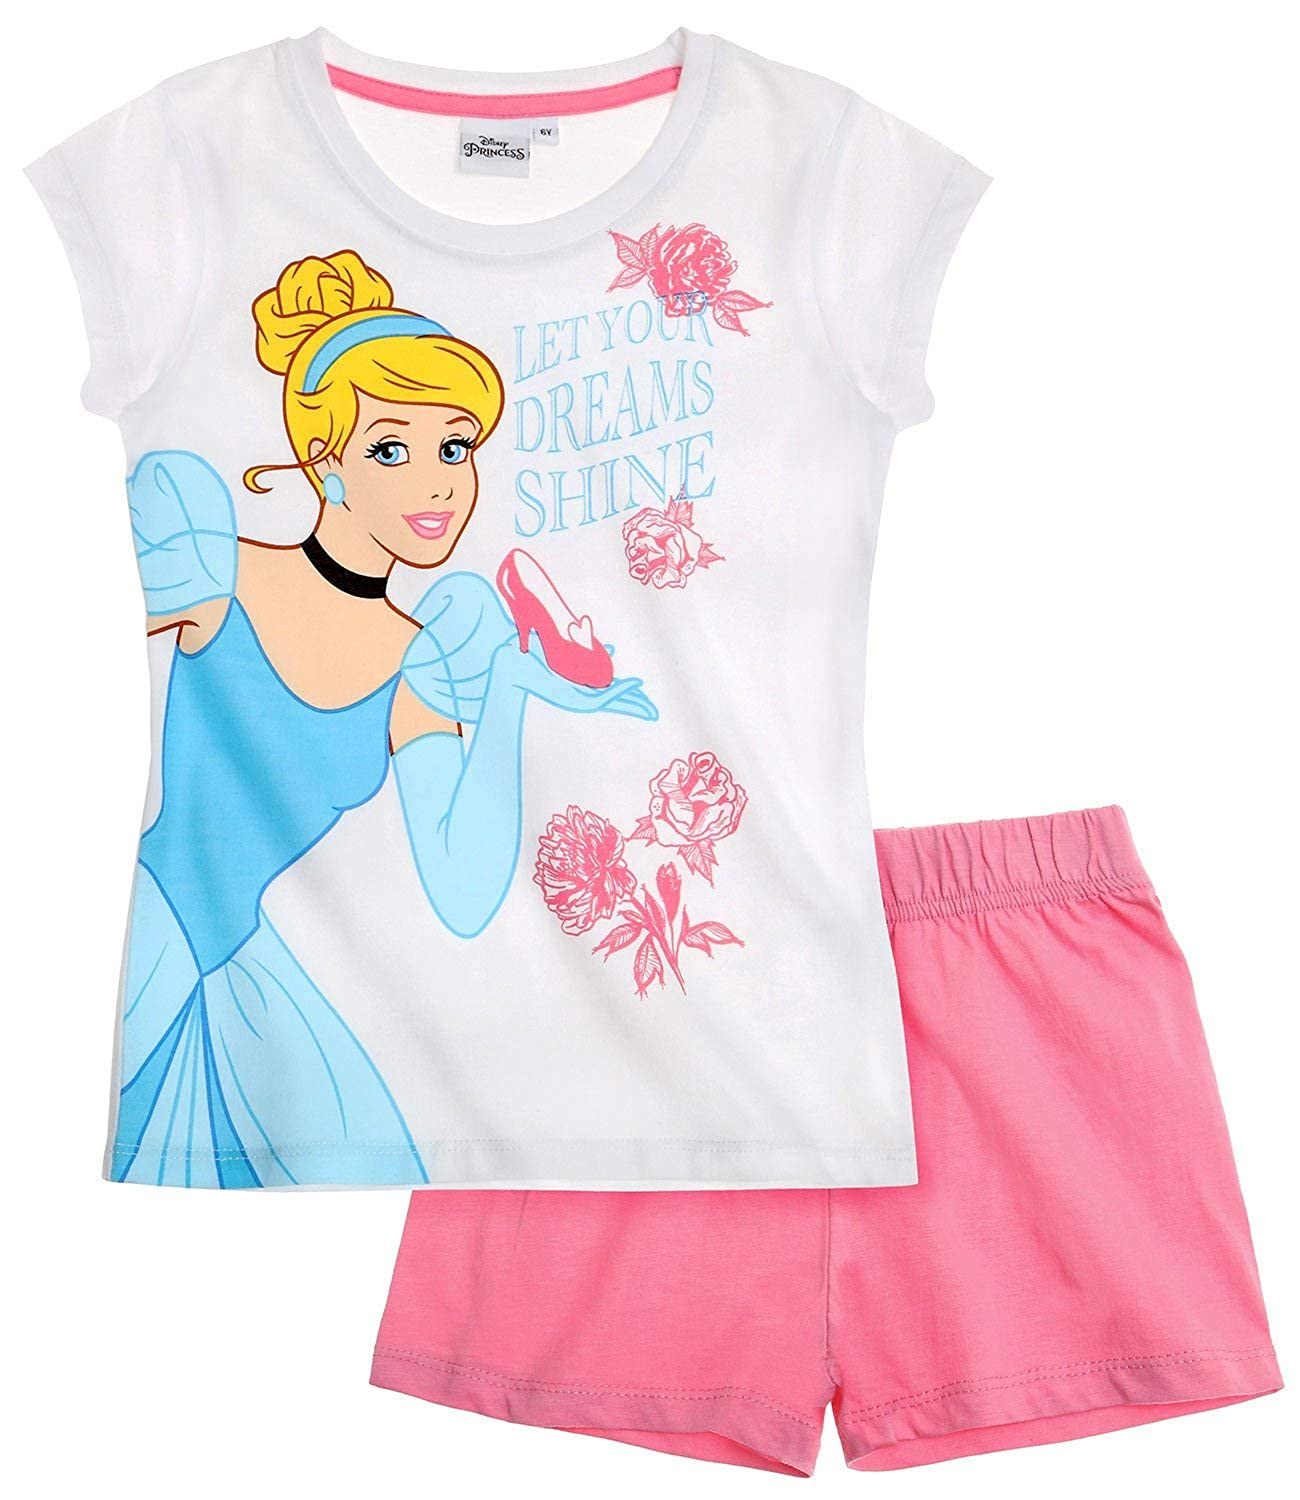 Disney Princess Ragazze Pigiama maniche corte 2016 Collection - bianco